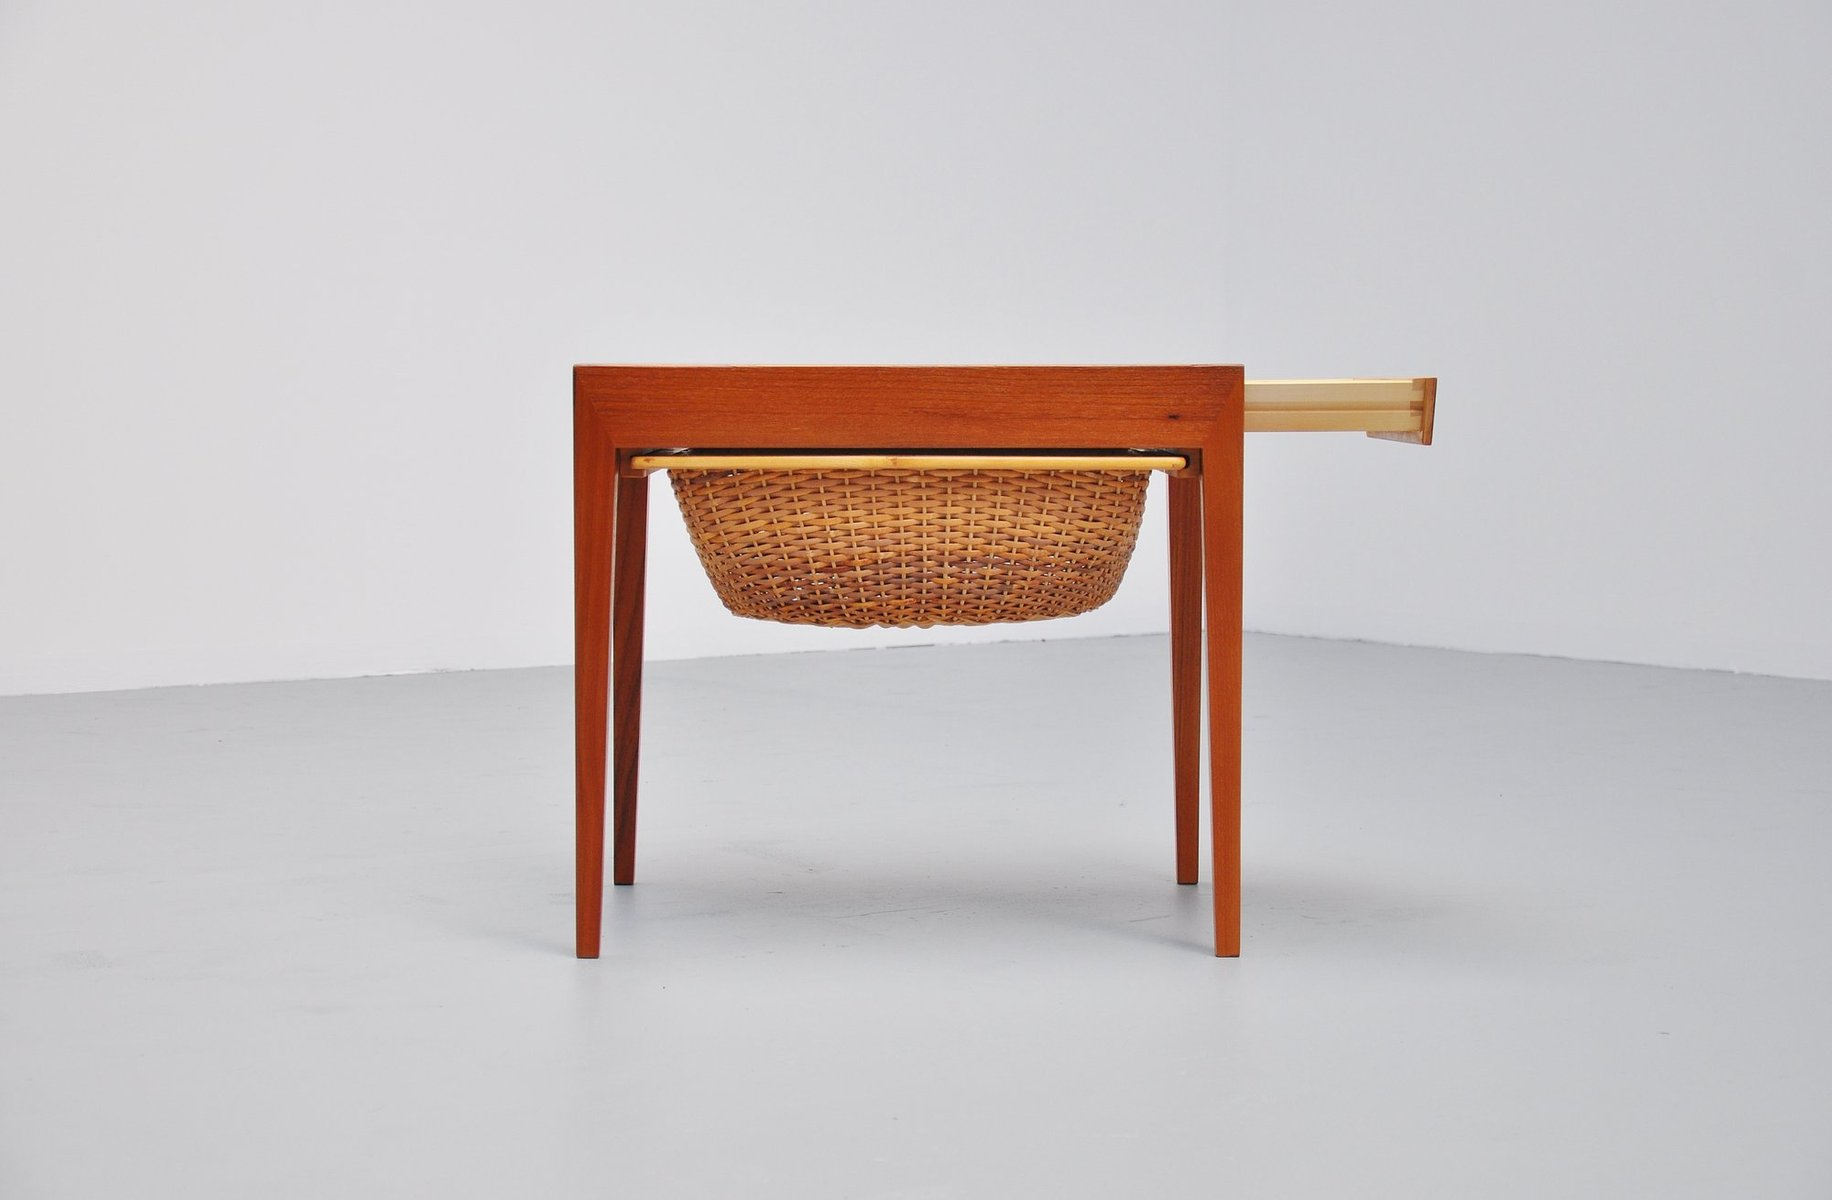 Sewing Table by Severin Hansen for Haslev Denmark 1955 for sale